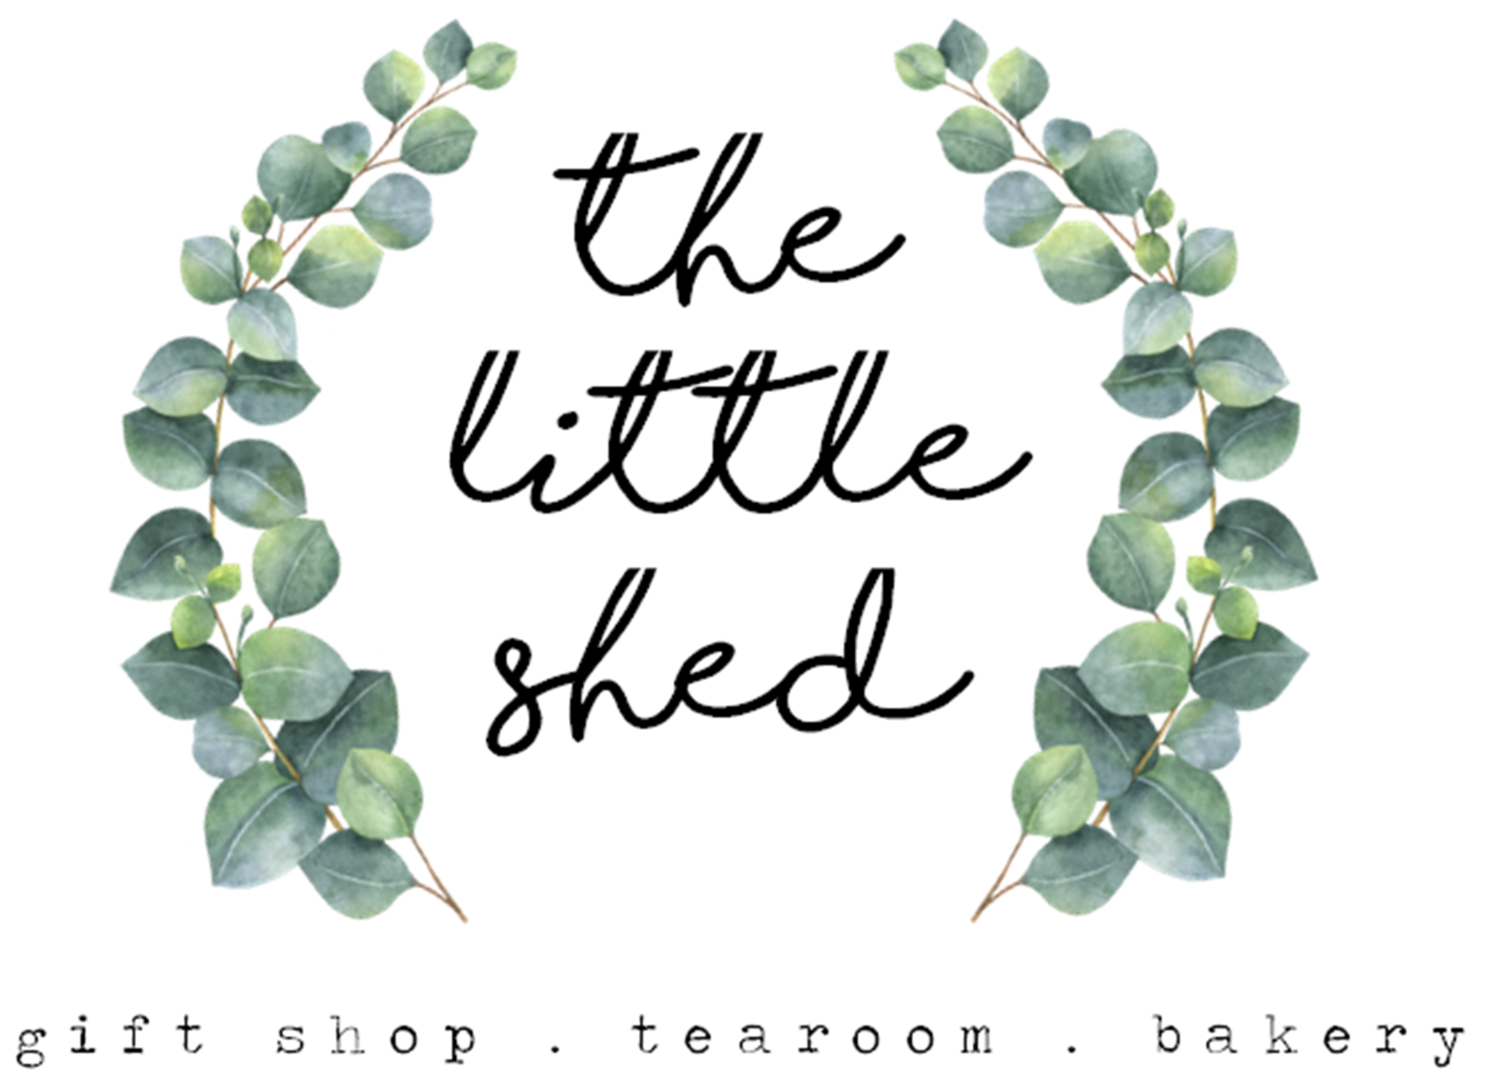 THE LITTLE SHED